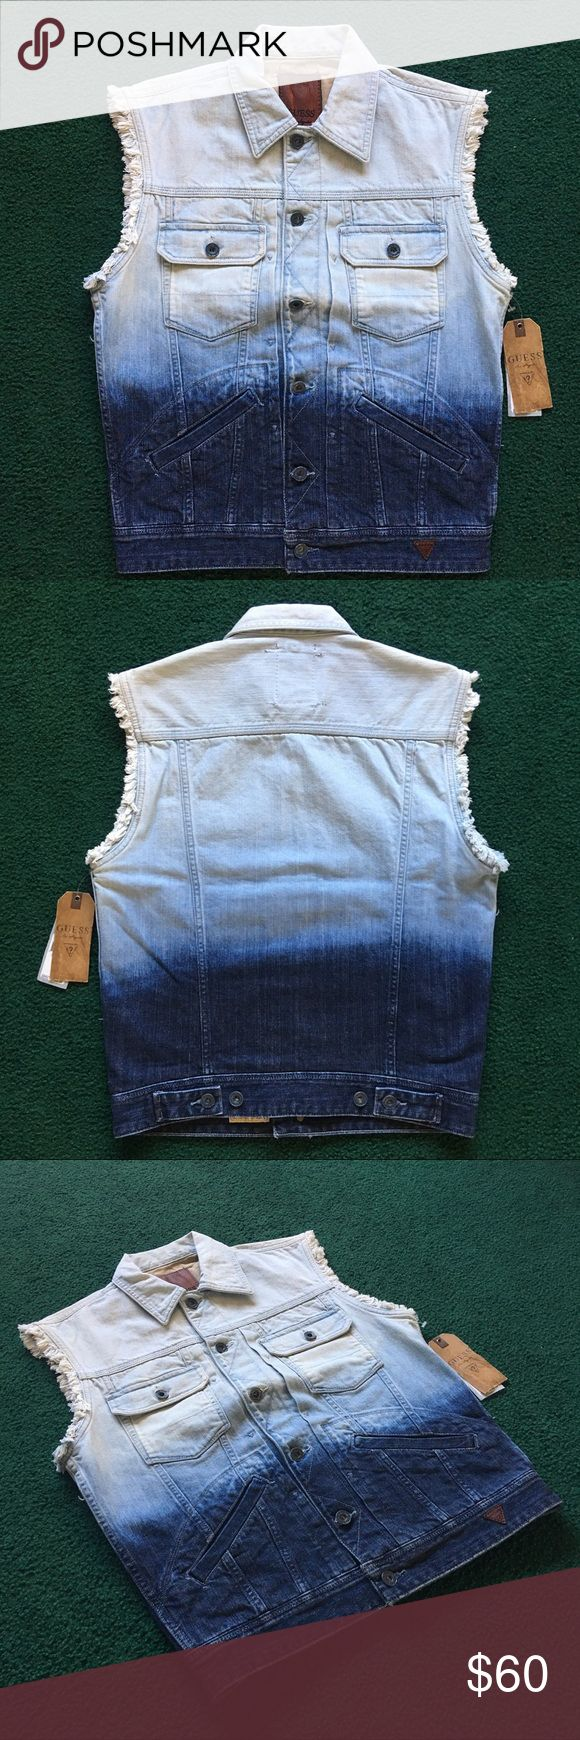 Guess Ombré Denim Vest Raw Sleeves Blue Jeans SZ S Very cute and on trend Guess denim vest! Faux vintage looking and ombre design. Garment is in perfect condition and with NWT. Please offer or ask any questions! Guess Jackets & Coats Vests